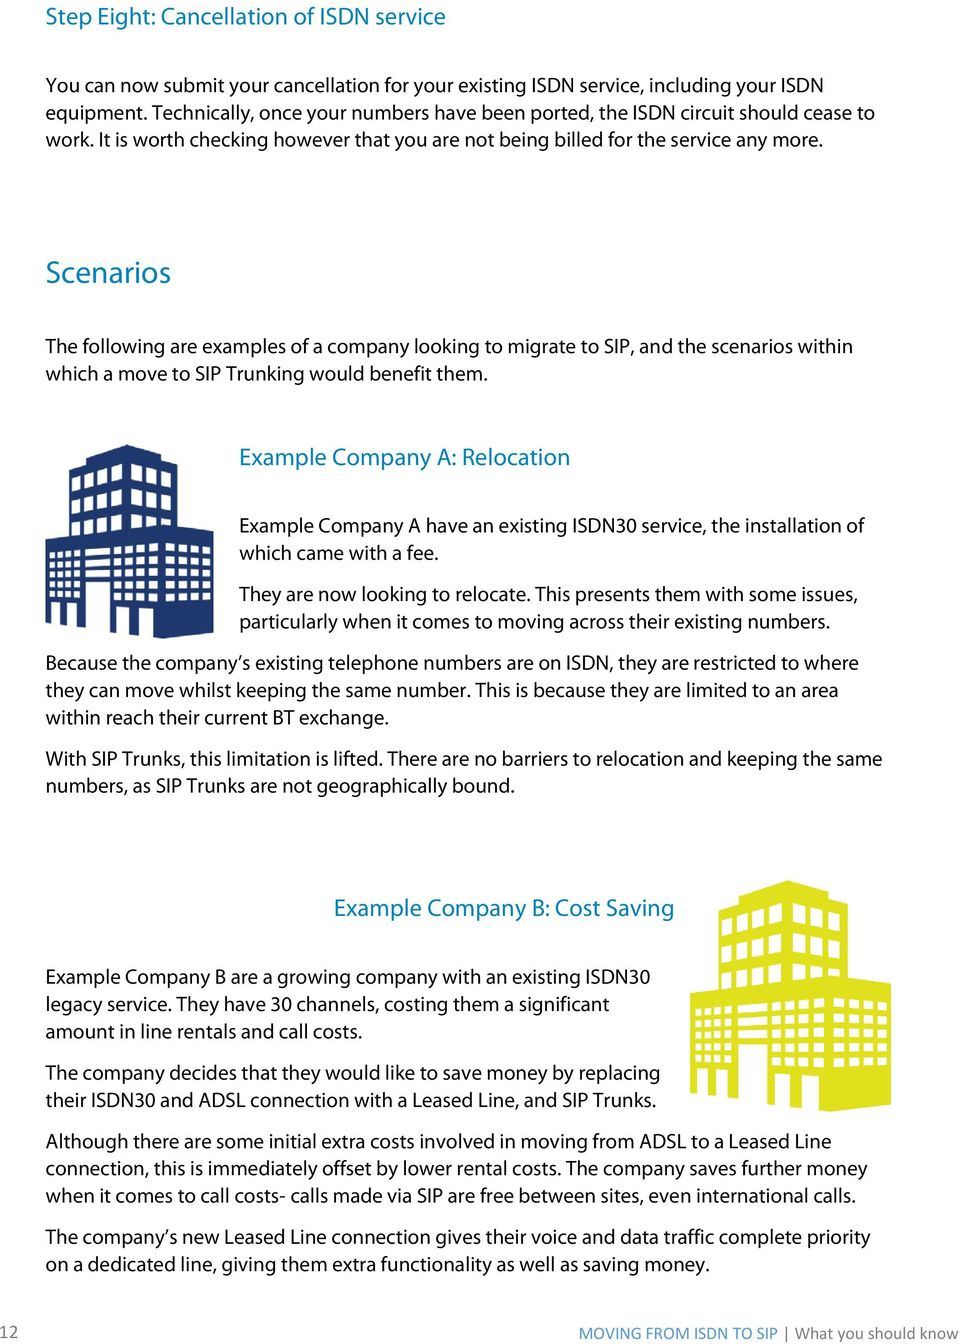 Scenarios The following are examples of a company looking to migrate to SIP, and the scenarios within which a move to SIP Trunking would benefit them.